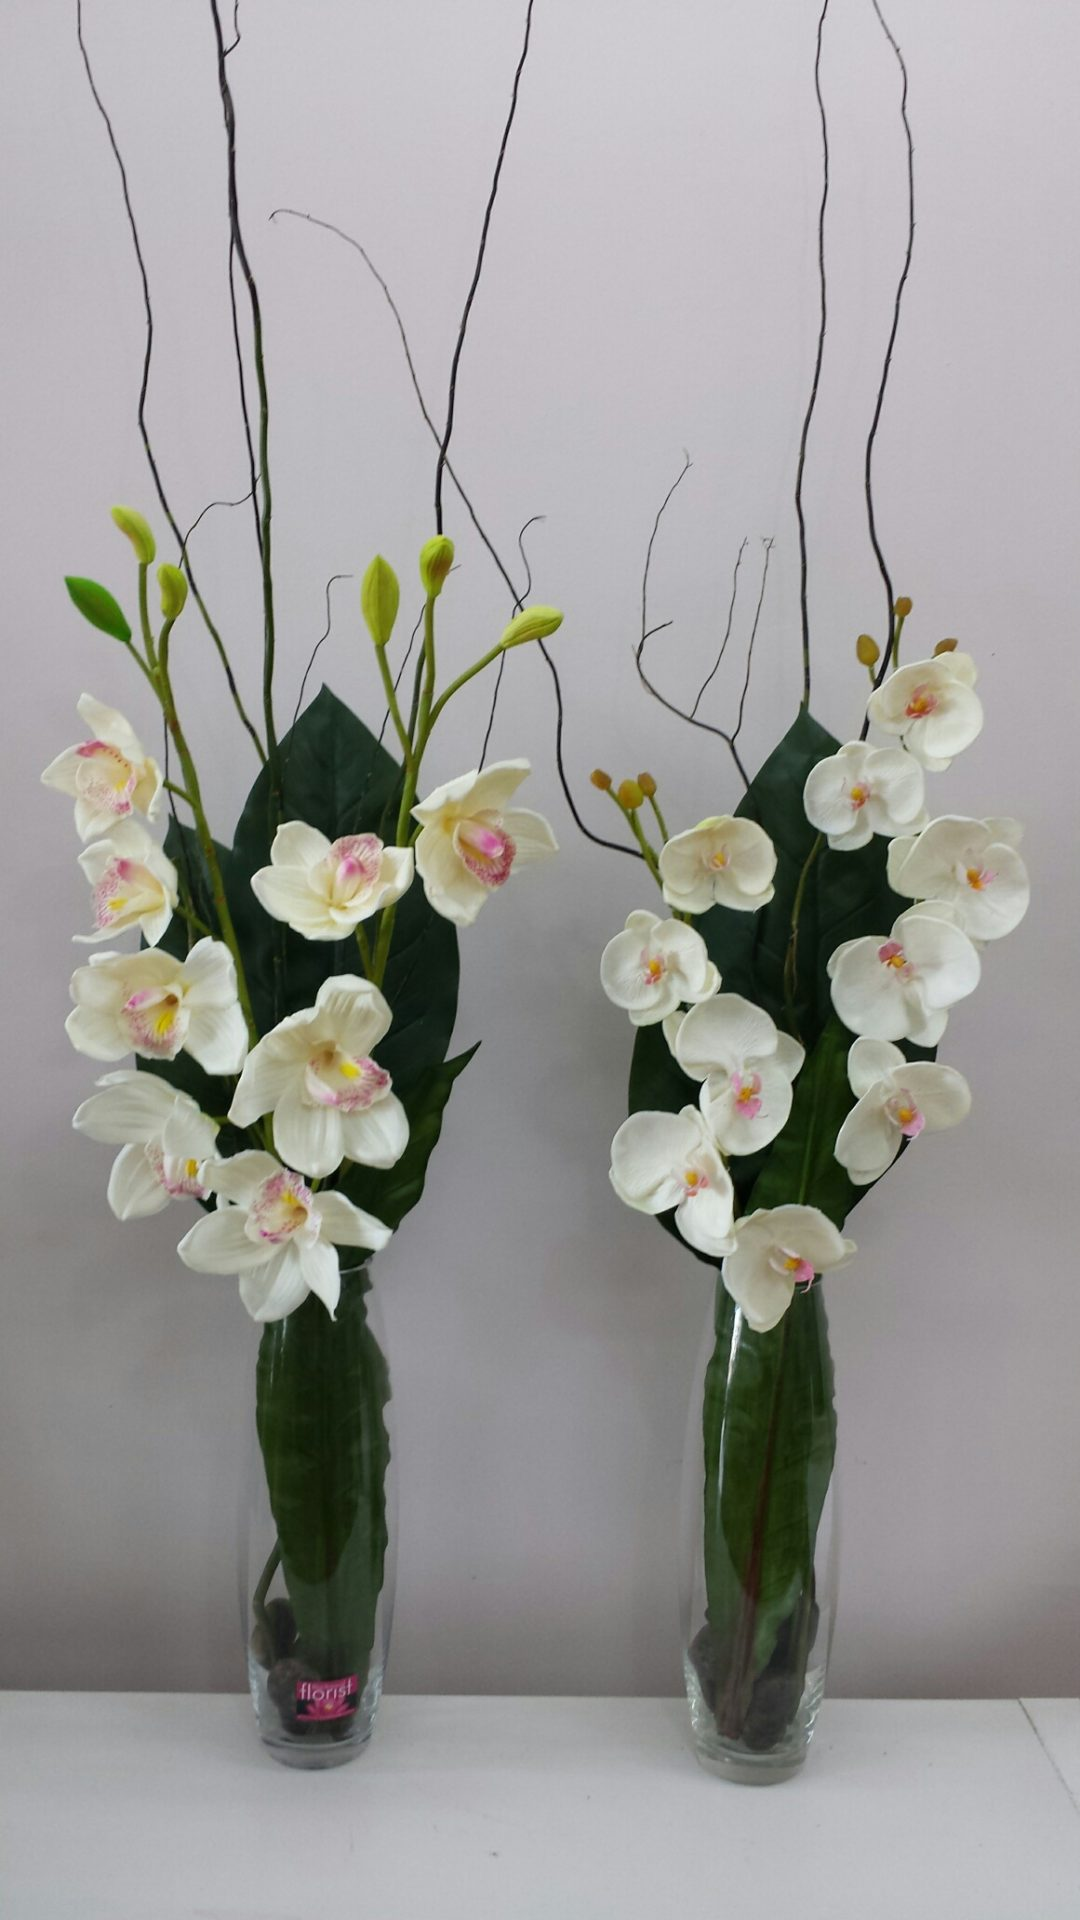 Tall glass vases with Orchids and willow sticks